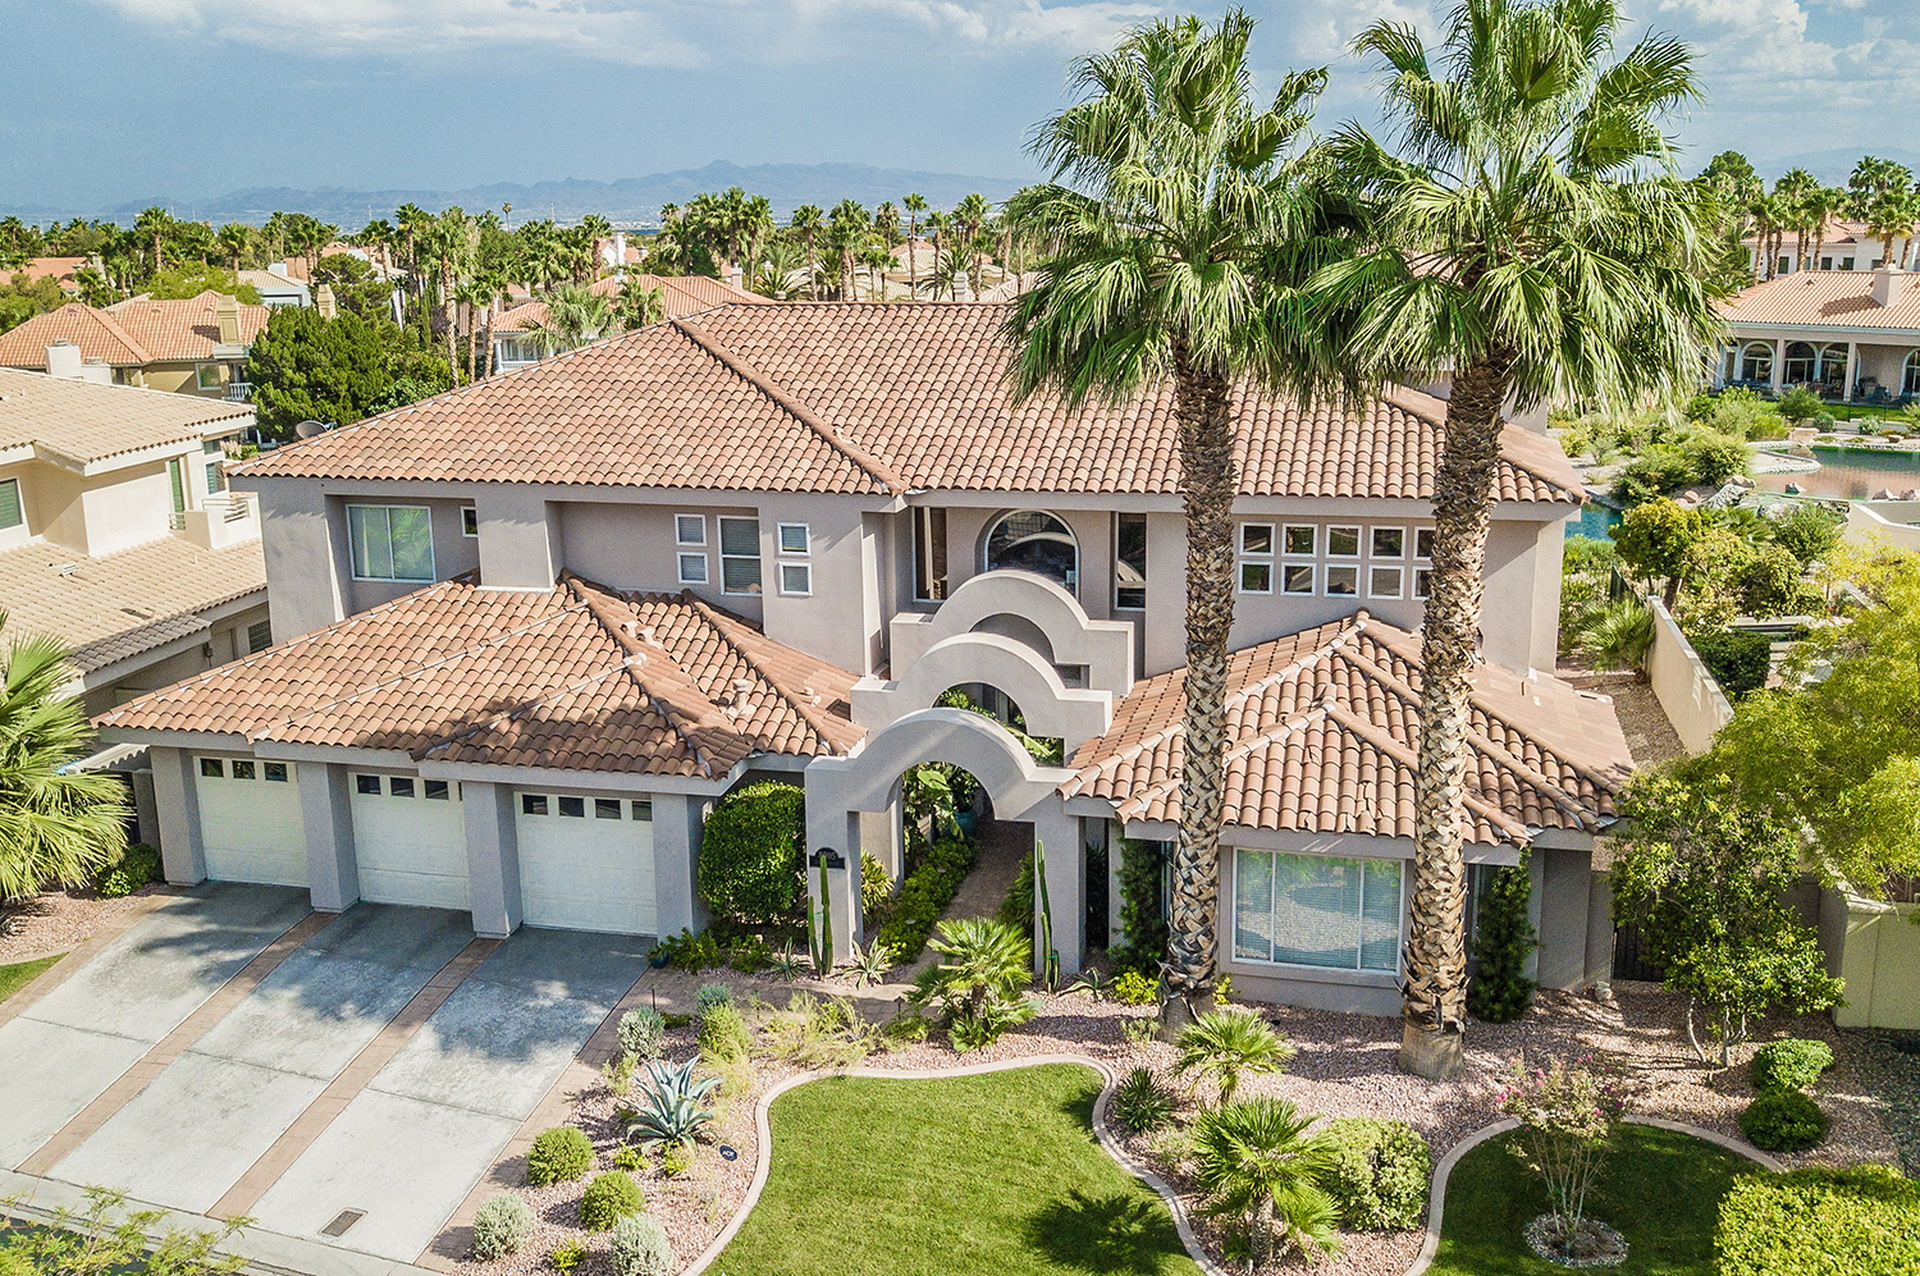 These 5 Las Vegas Mansions Went Into Foreclosure In 2018